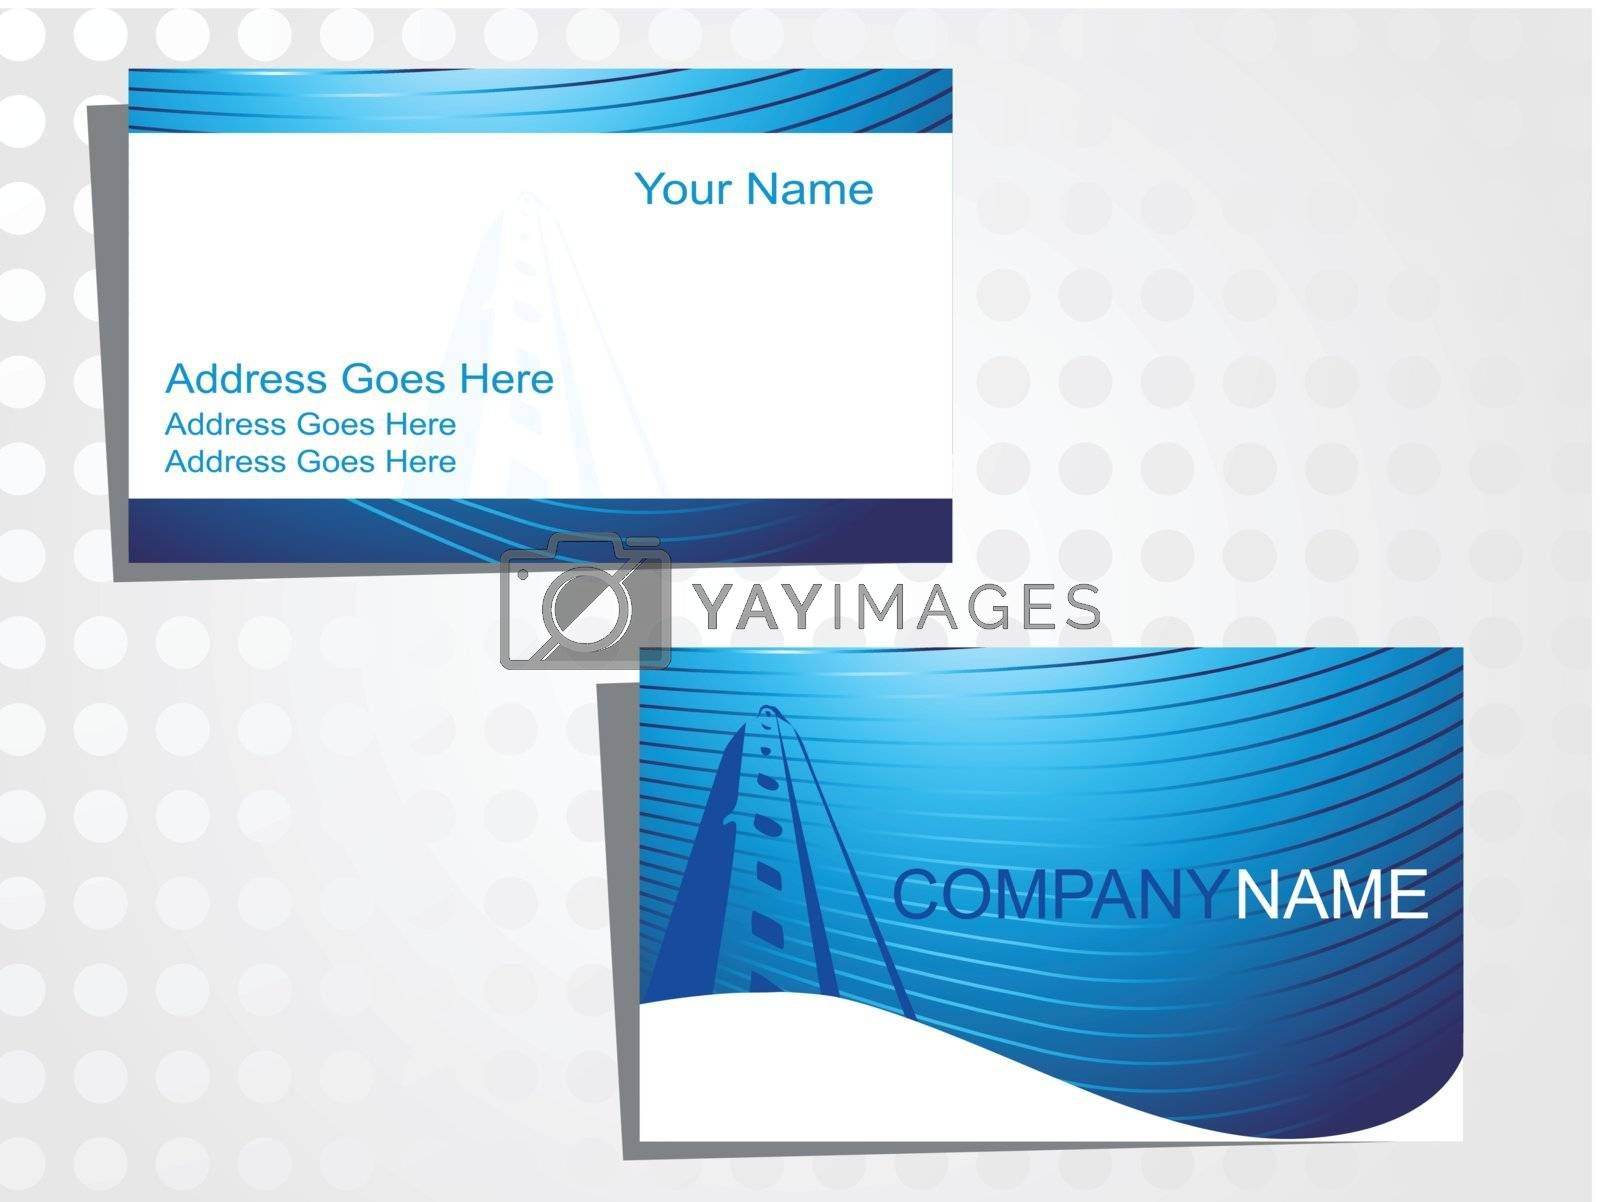 real state business card with logo_34